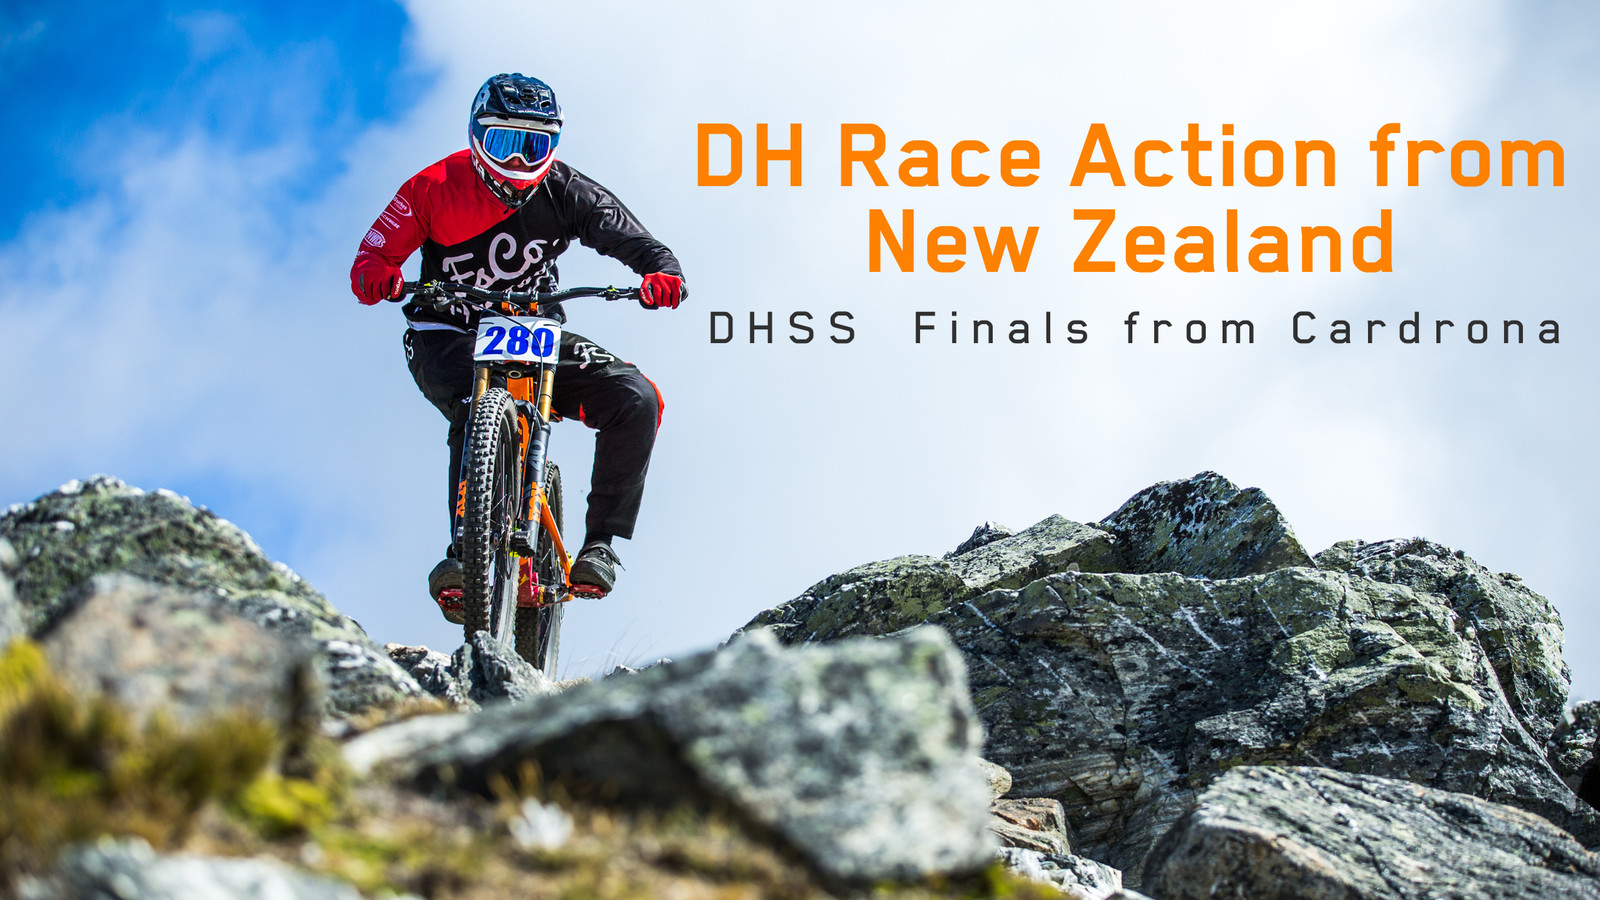 New Zealand DH Action - DHSS Final Round at Cardrona